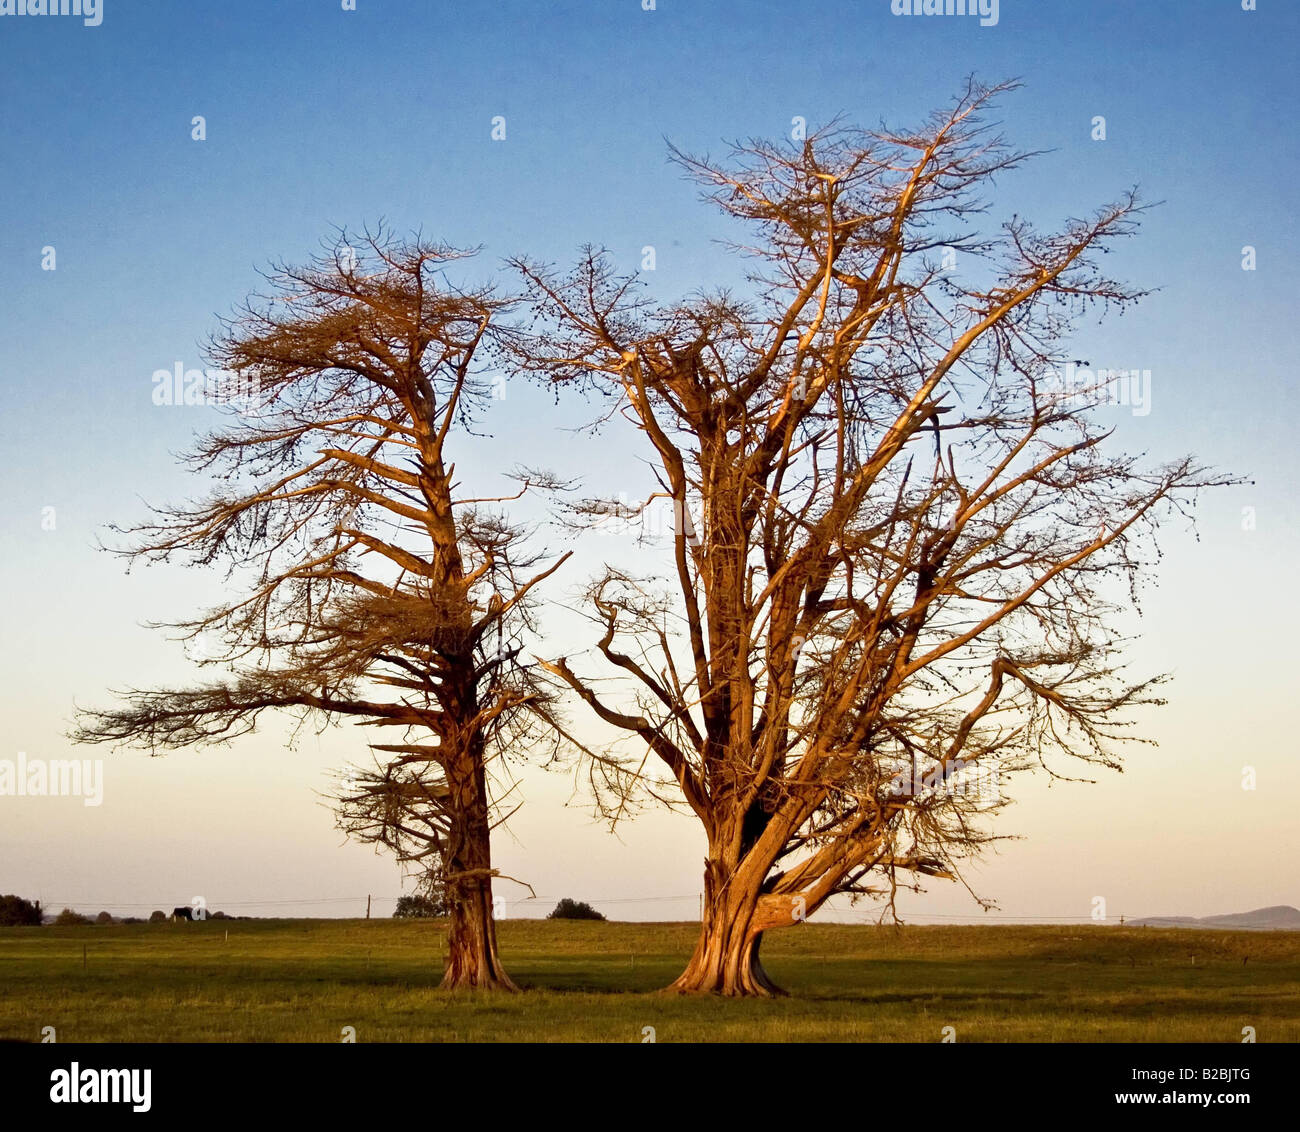 Trees in the field Date 21 12 2007 Ref B886 109833 0123 COMPULSORY CREDIT Stephen Power World Pictures Photoshot - Stock Image